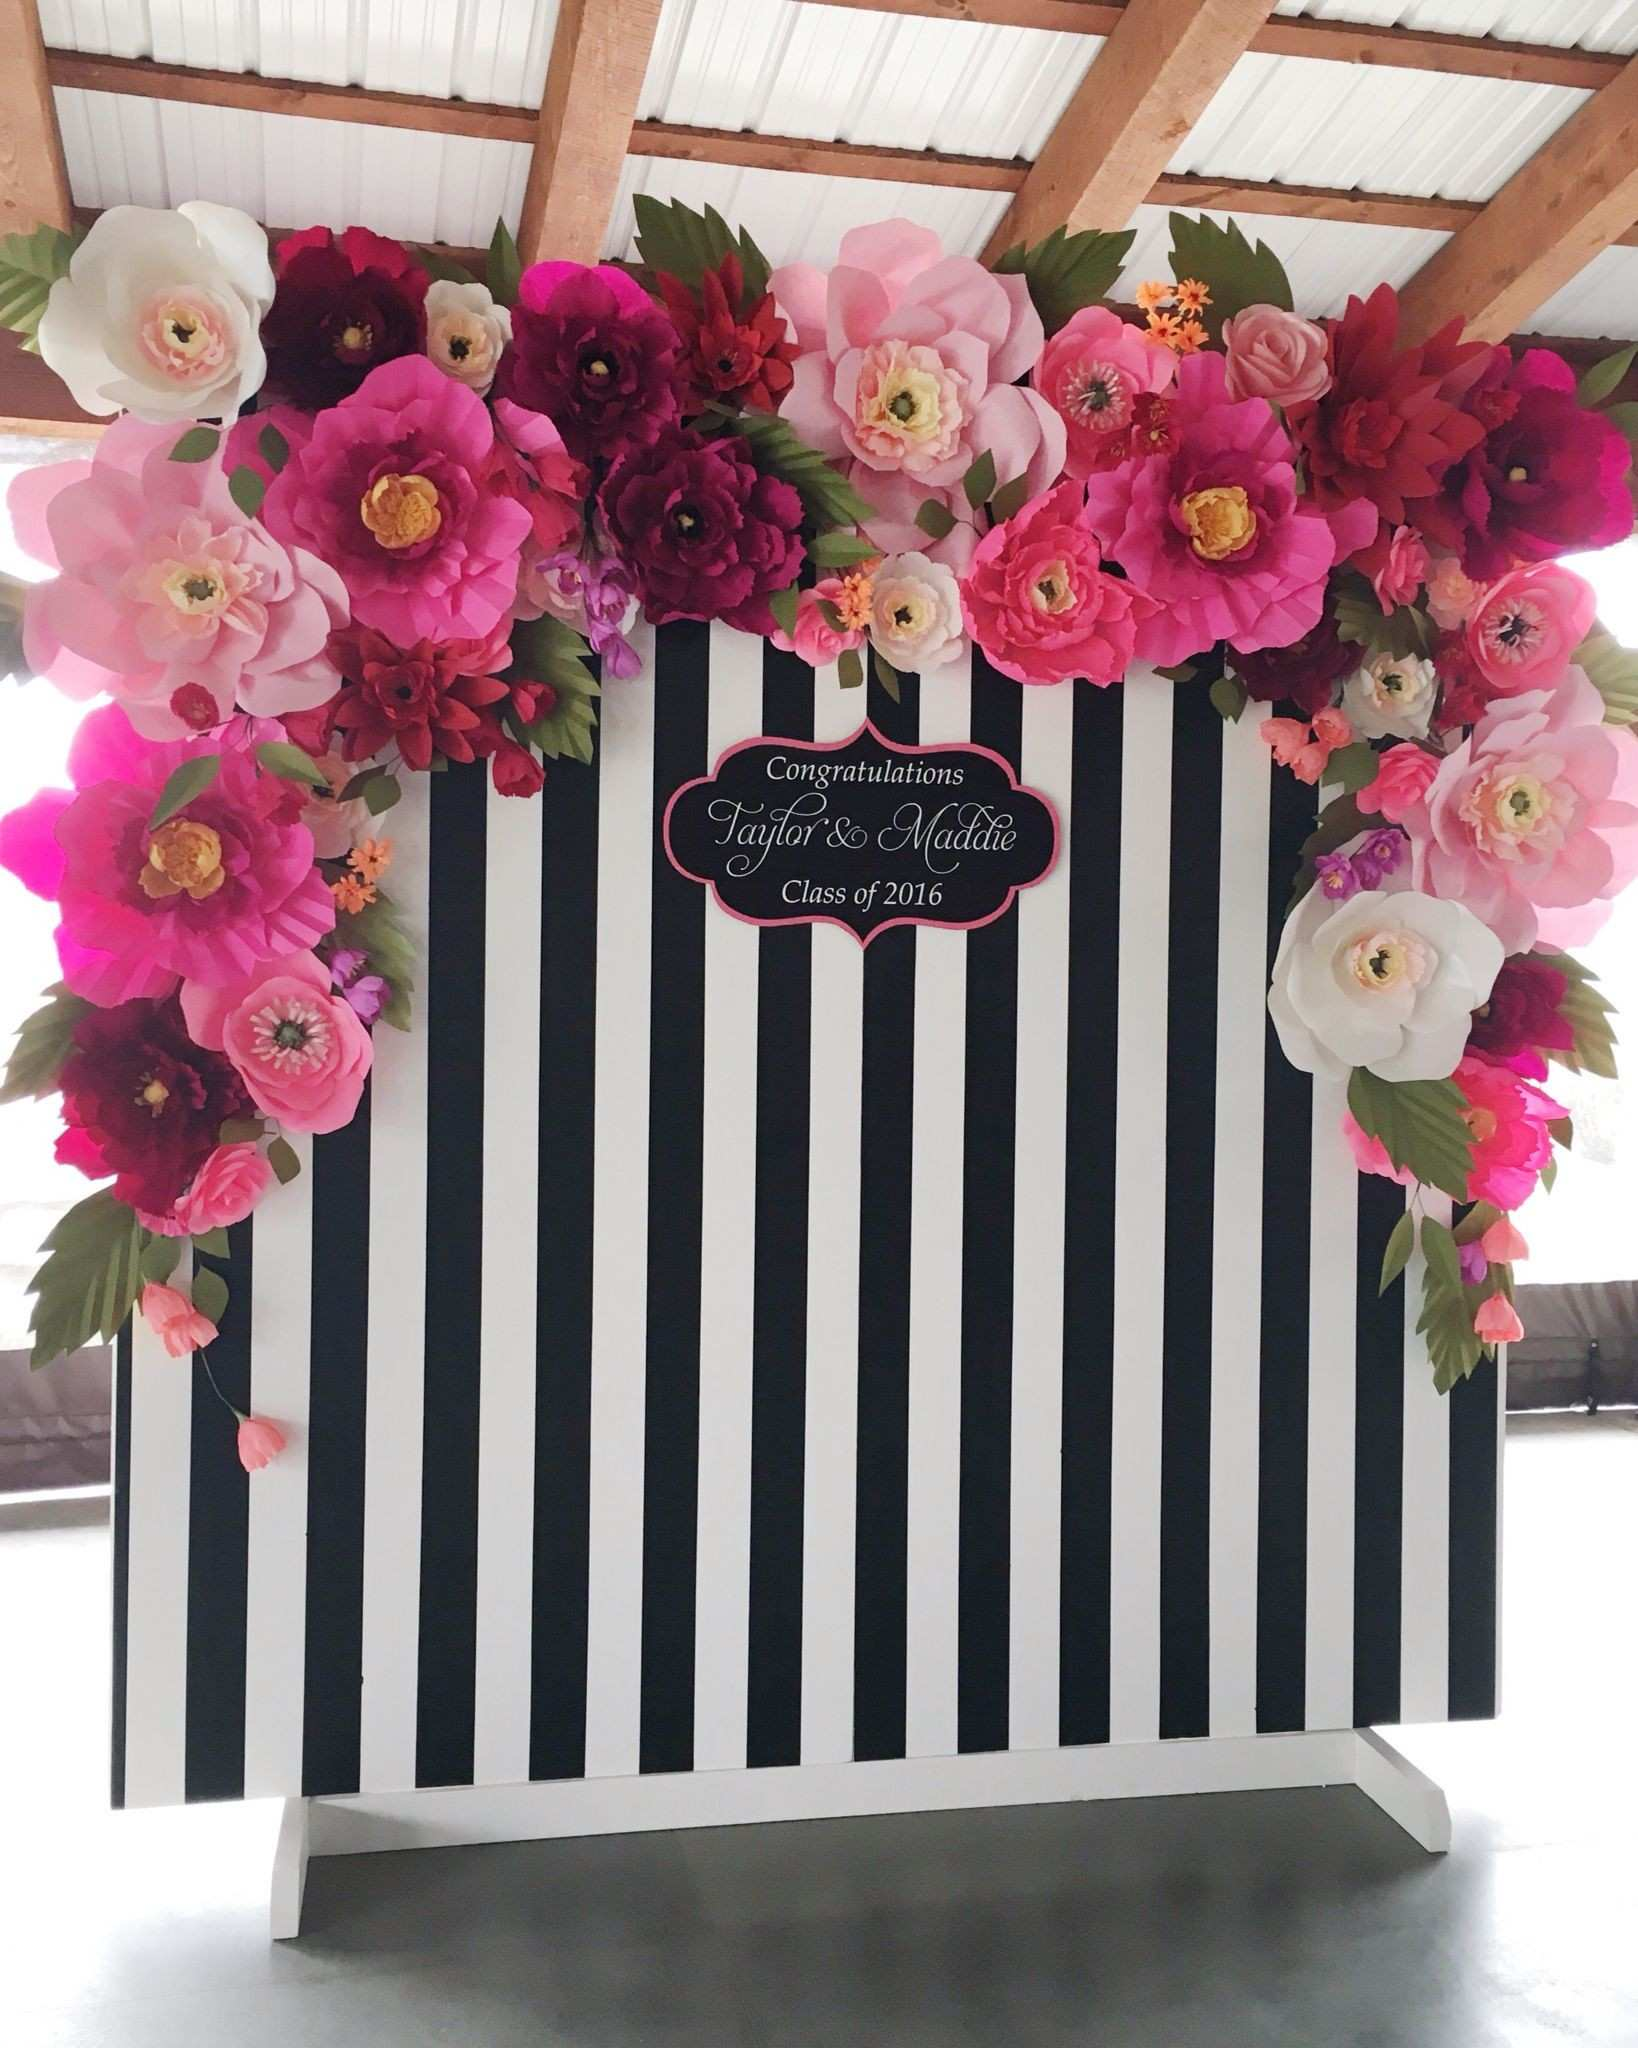 How Perfect is This Black and White Stripped and Flowery Backdrop